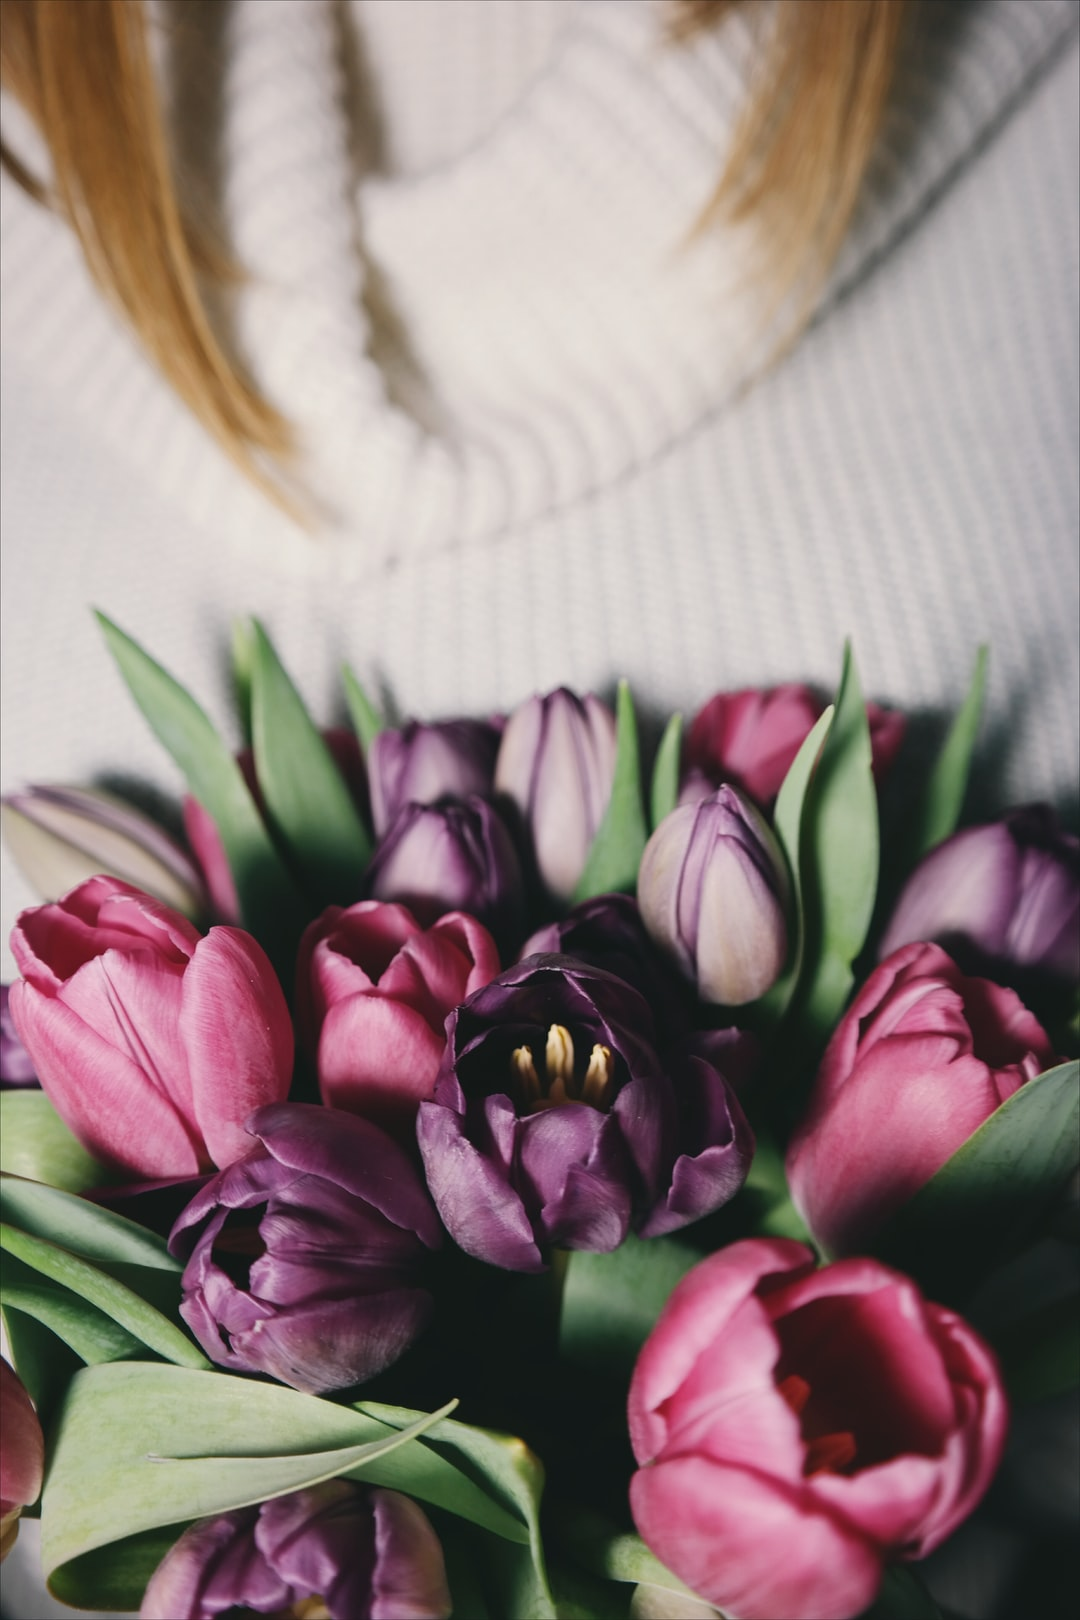 Woman with purple tulips